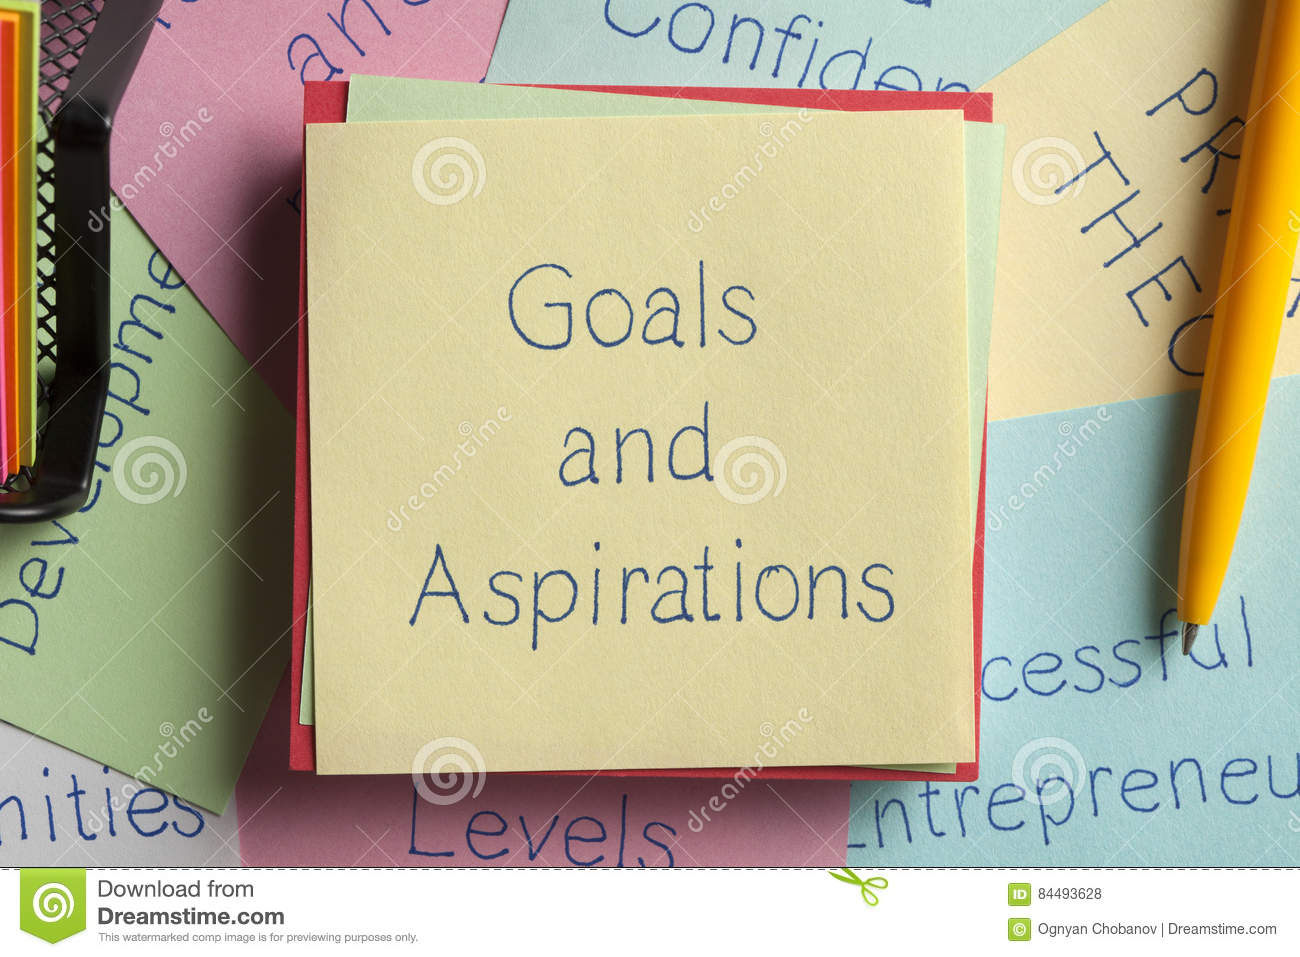 my goals and aspirations My goals and aspirations monday, april 28, 2014 its goal is to provide students with an acute awareness for human diversity as well as guide them towards understanding the true depth of understanding leadership dimensions.